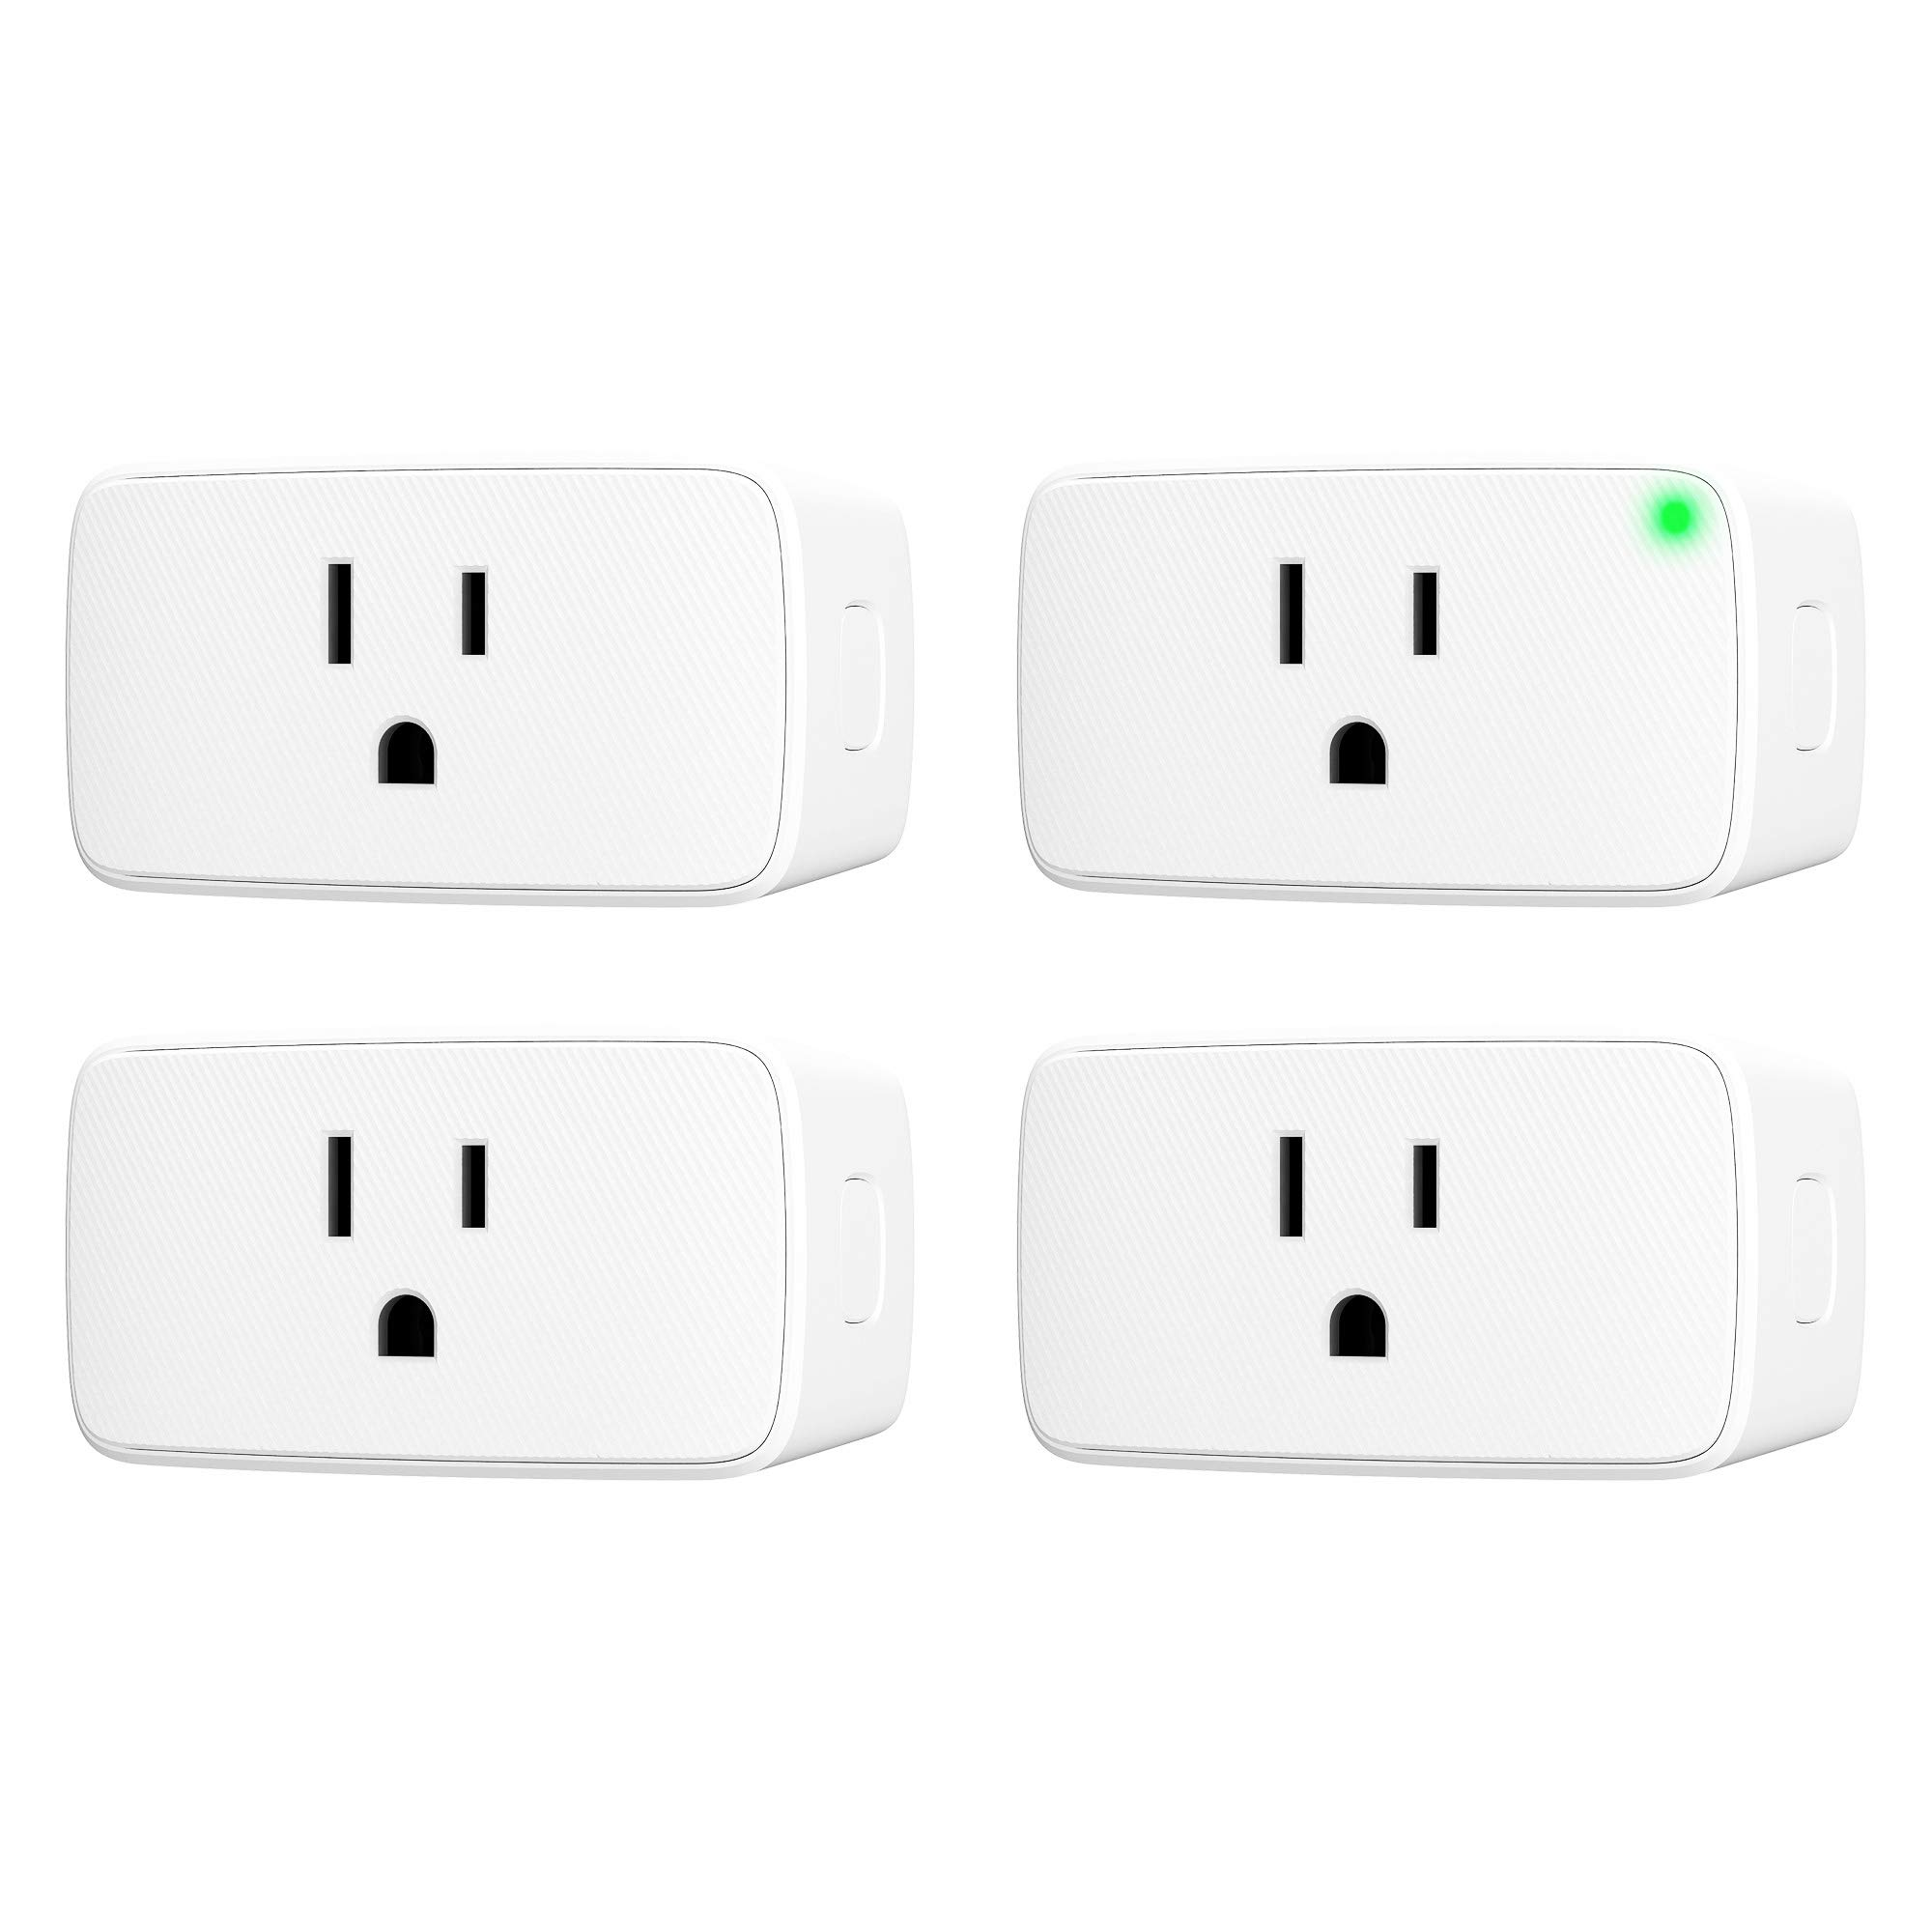 VOCOlinc Smart Plug, Wi-Fi Mini Outlet Socket, Works with HomeKit (iOS12 or +), Alexa & Google Assistant, Timer, No Hub Required, 15A 1800W, 2.4GHz, Smartbar (4 Pack)